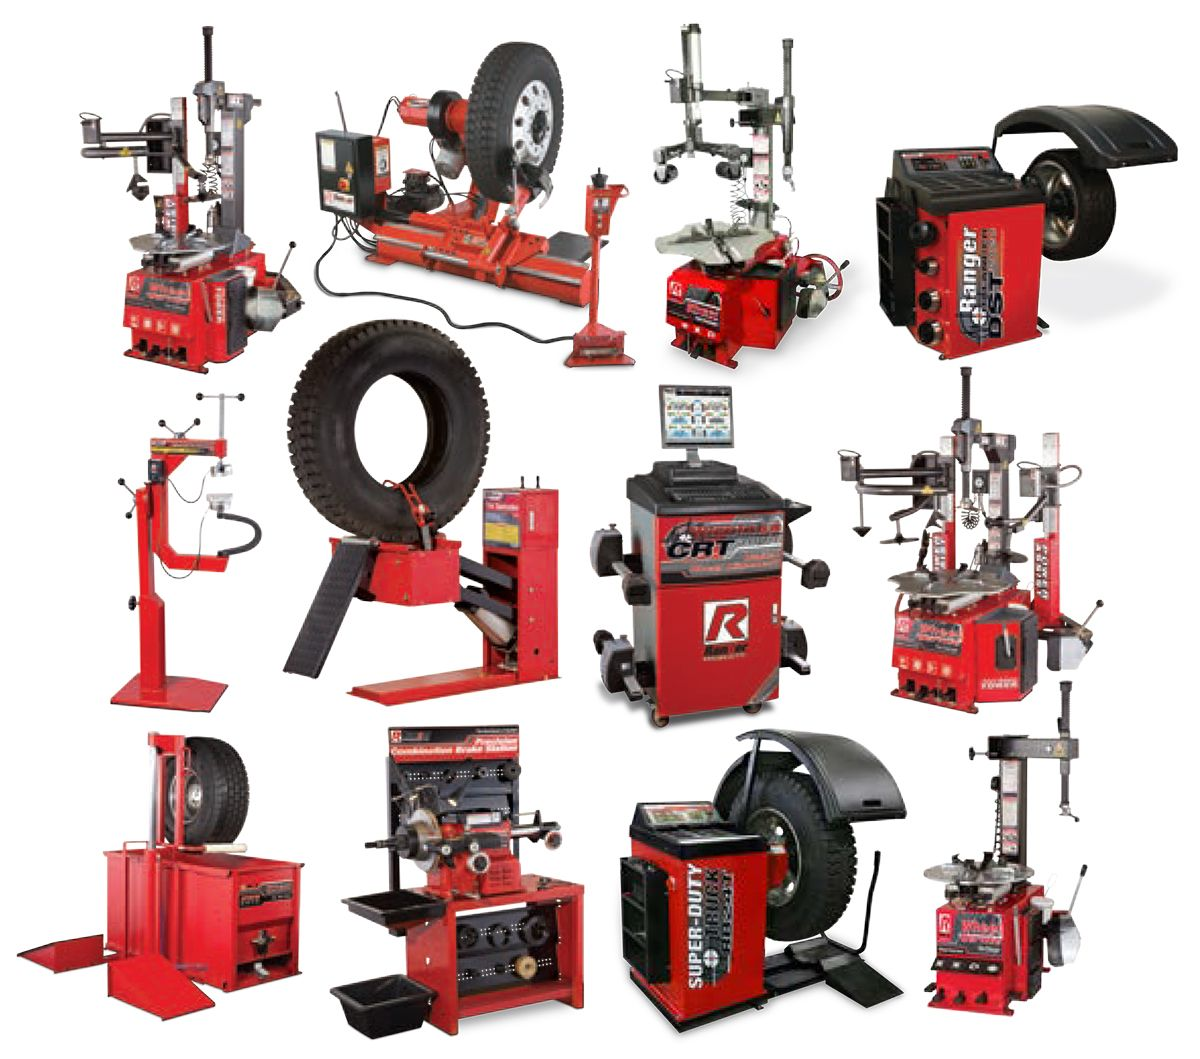 Ranger Products Wheel Service and Shop Equipment